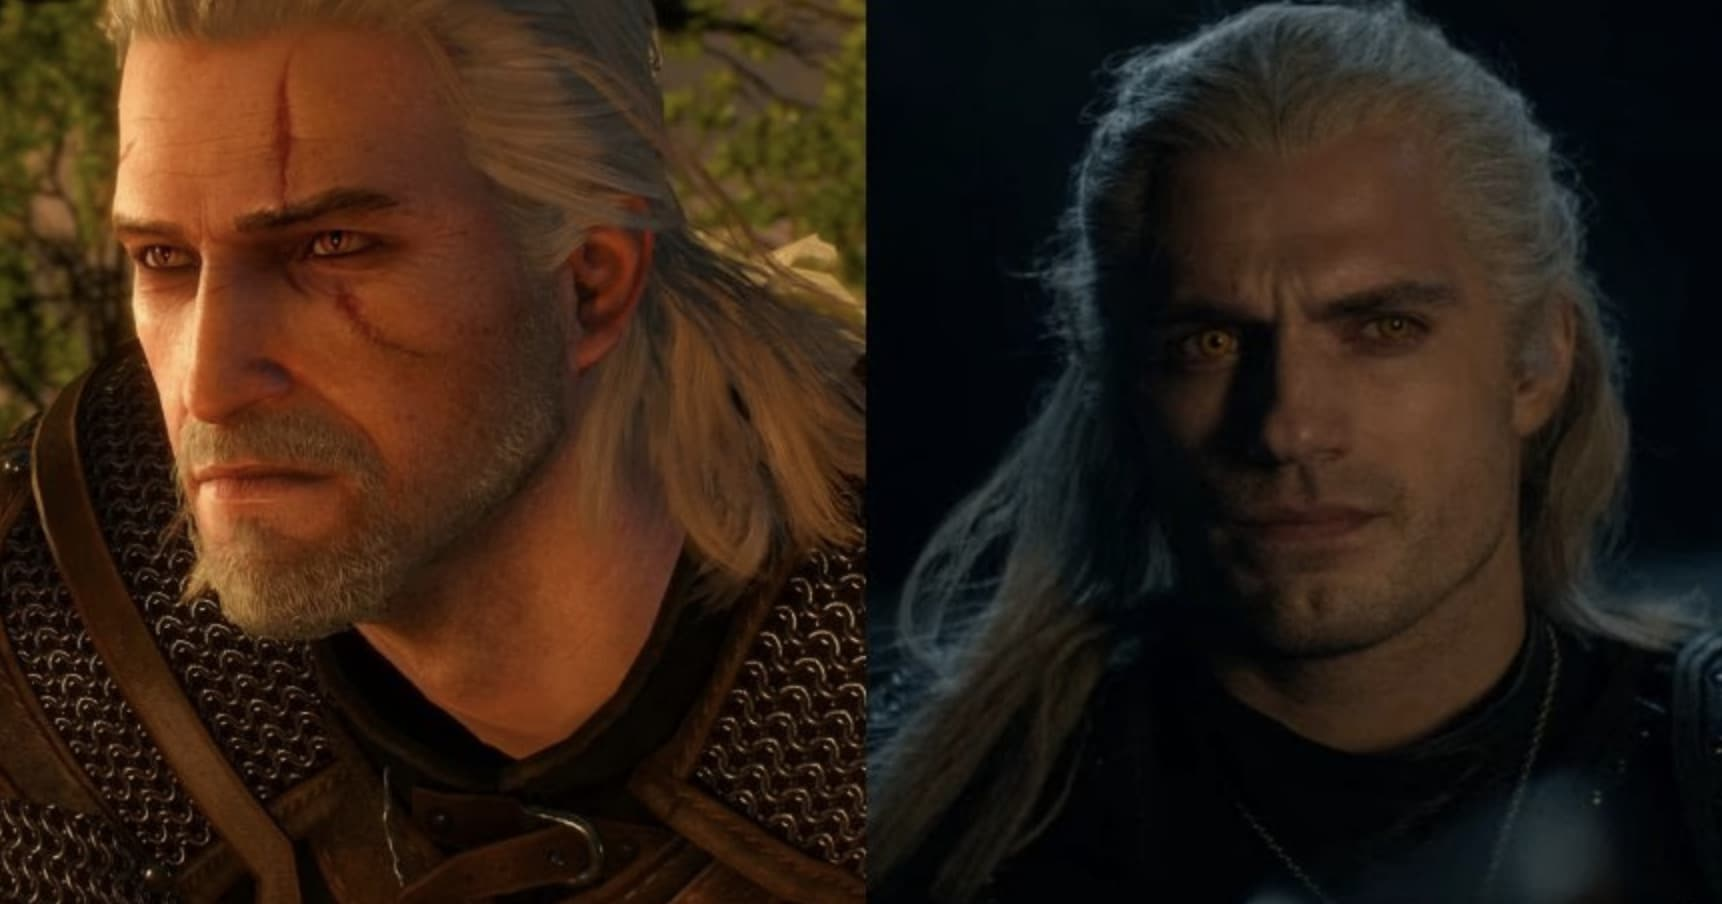 Image of Random 'The Witcher' Characters Compare With The Video Games